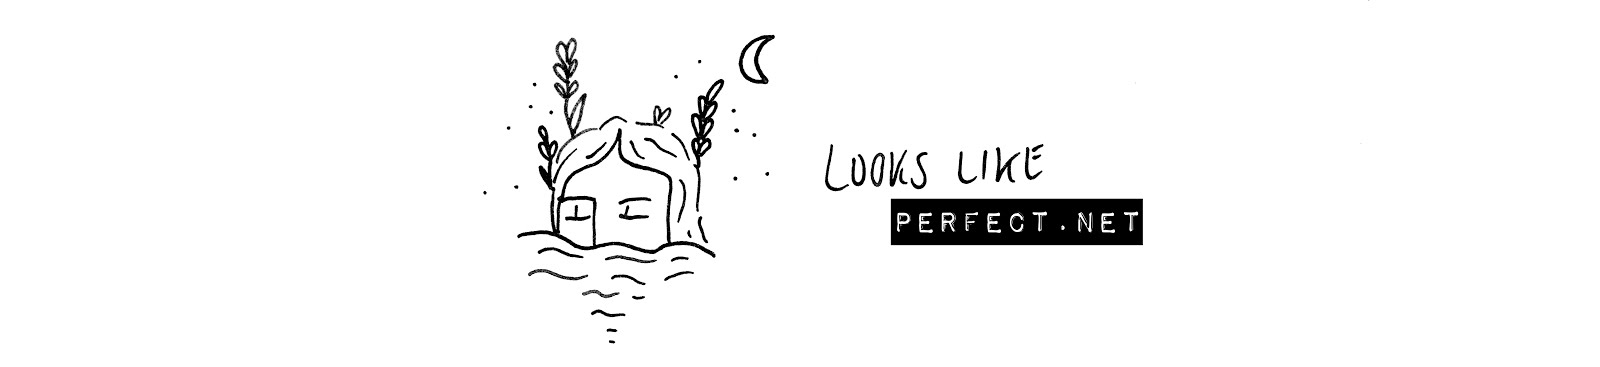 Lookslikeperfect.net - Reisen, Mode & Lifestyle aus Siegen (Germany)